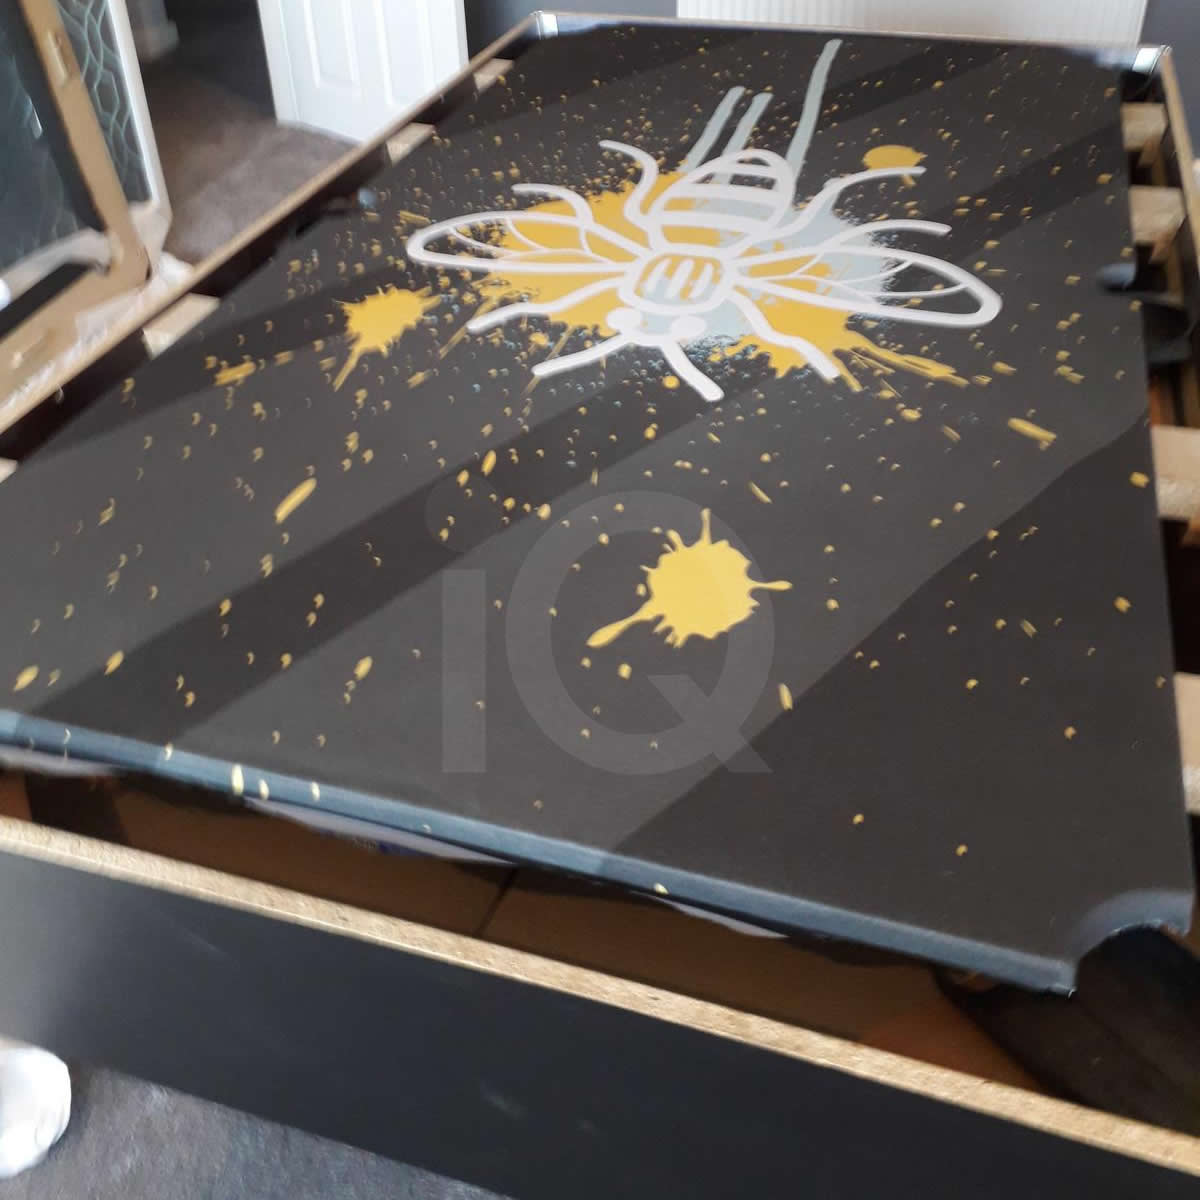 Installation of a Bee Custom Design Pool Table Cloth Before Image 3